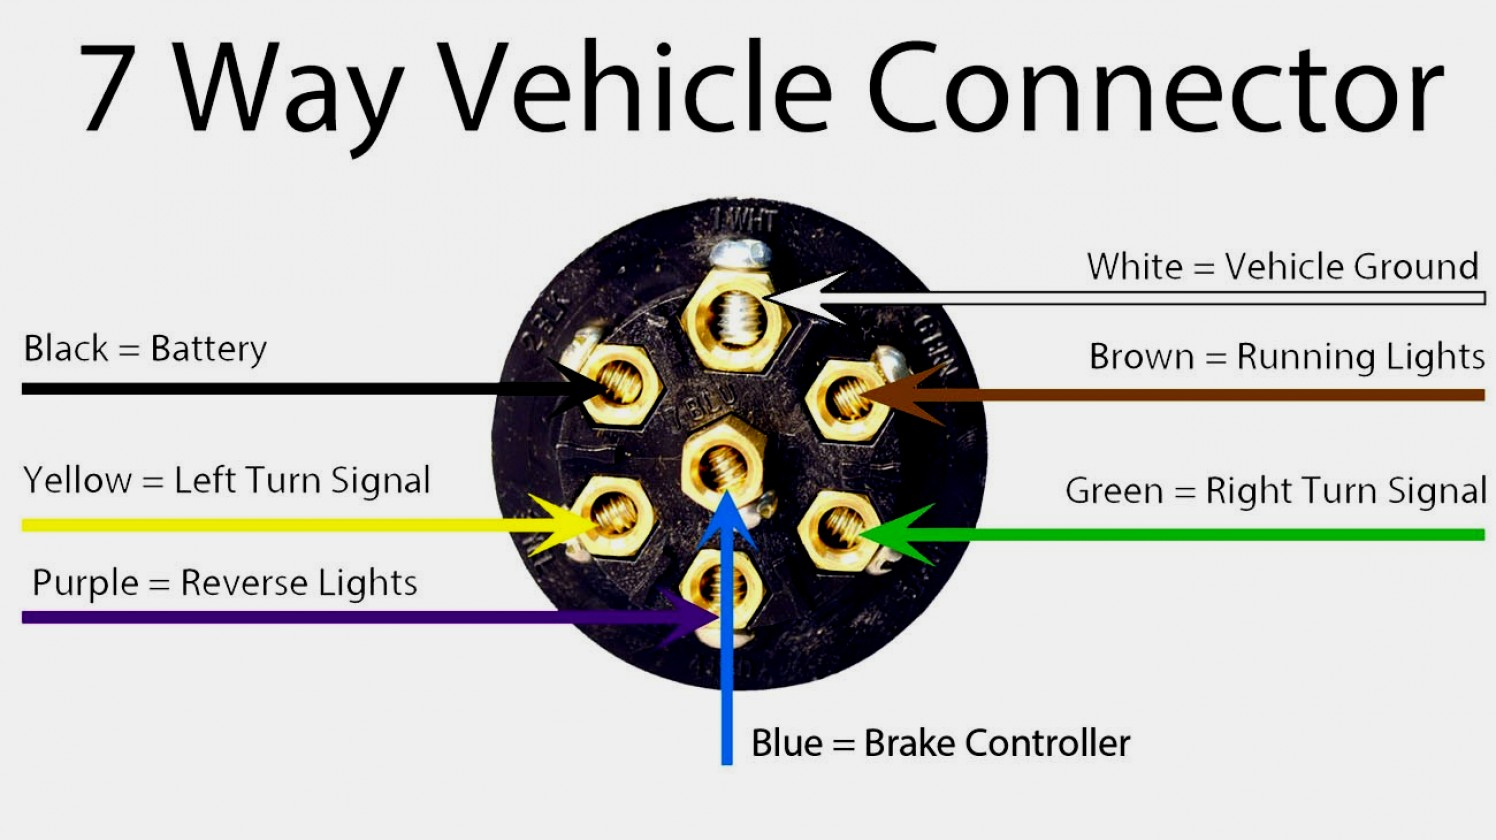 Wiring Diagram For Trailer Lights South Africa - Wiring Diagrams Img - Wiring Diagram Trailer South Africa